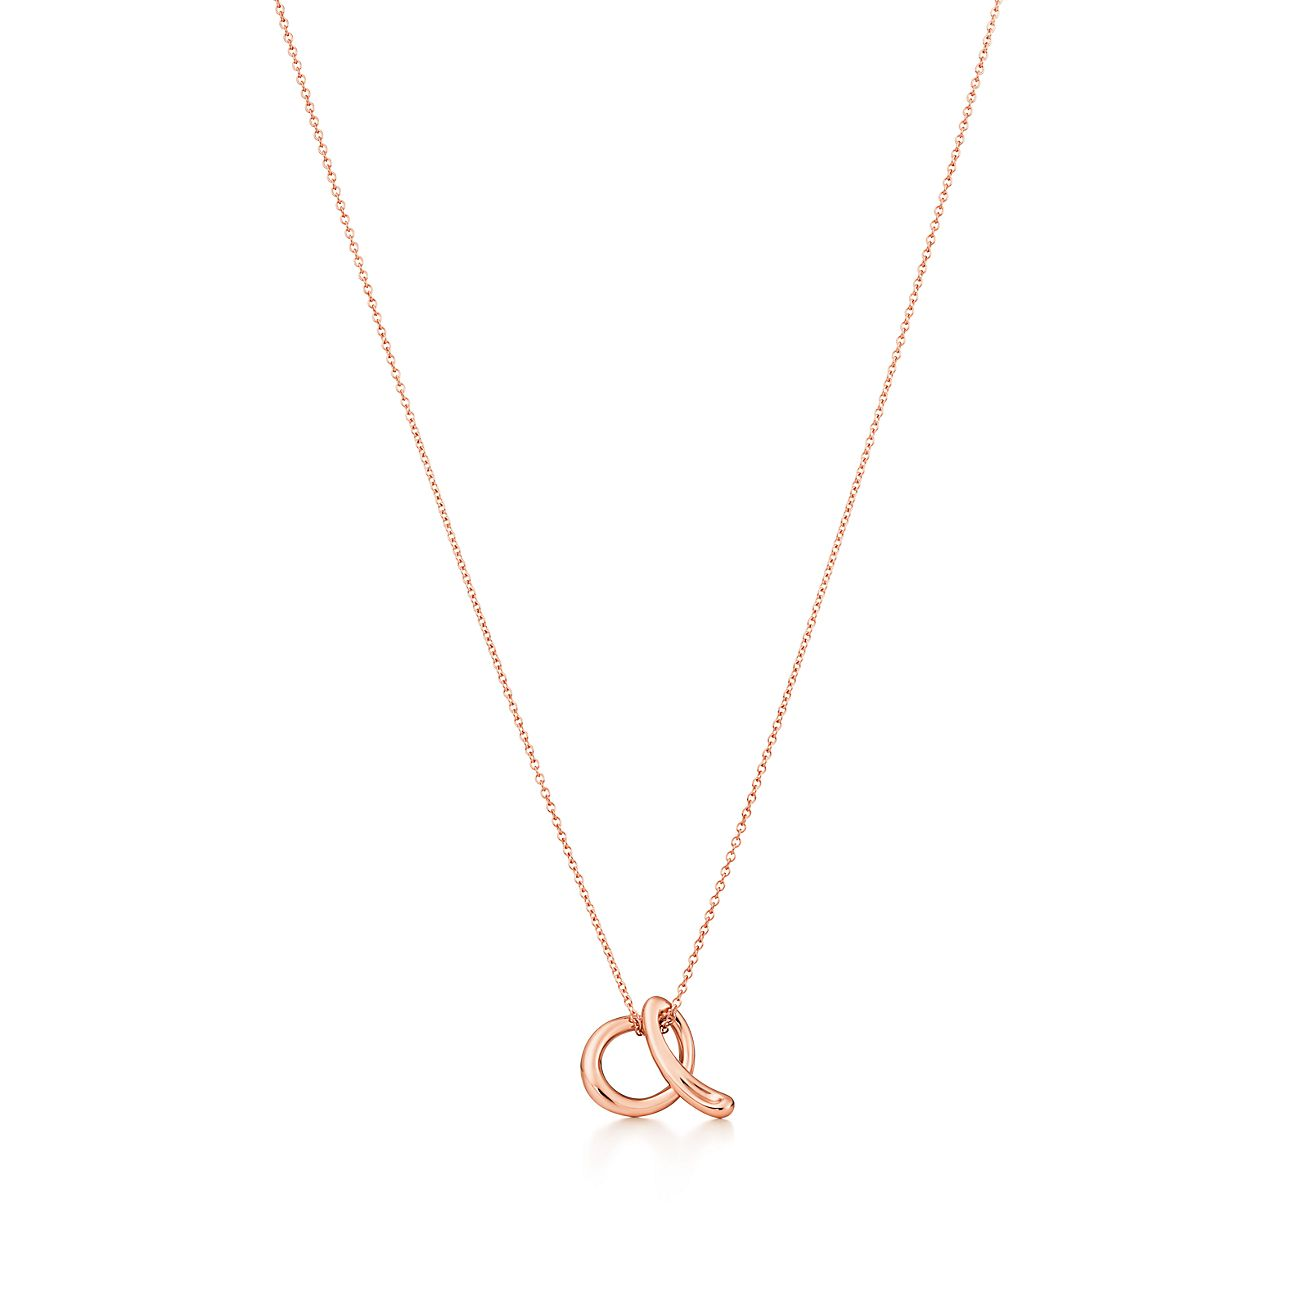 Elsa Peretti Alphabet pendant in 18k rose gold Letters A-Z available - Size E Tiffany & Co.